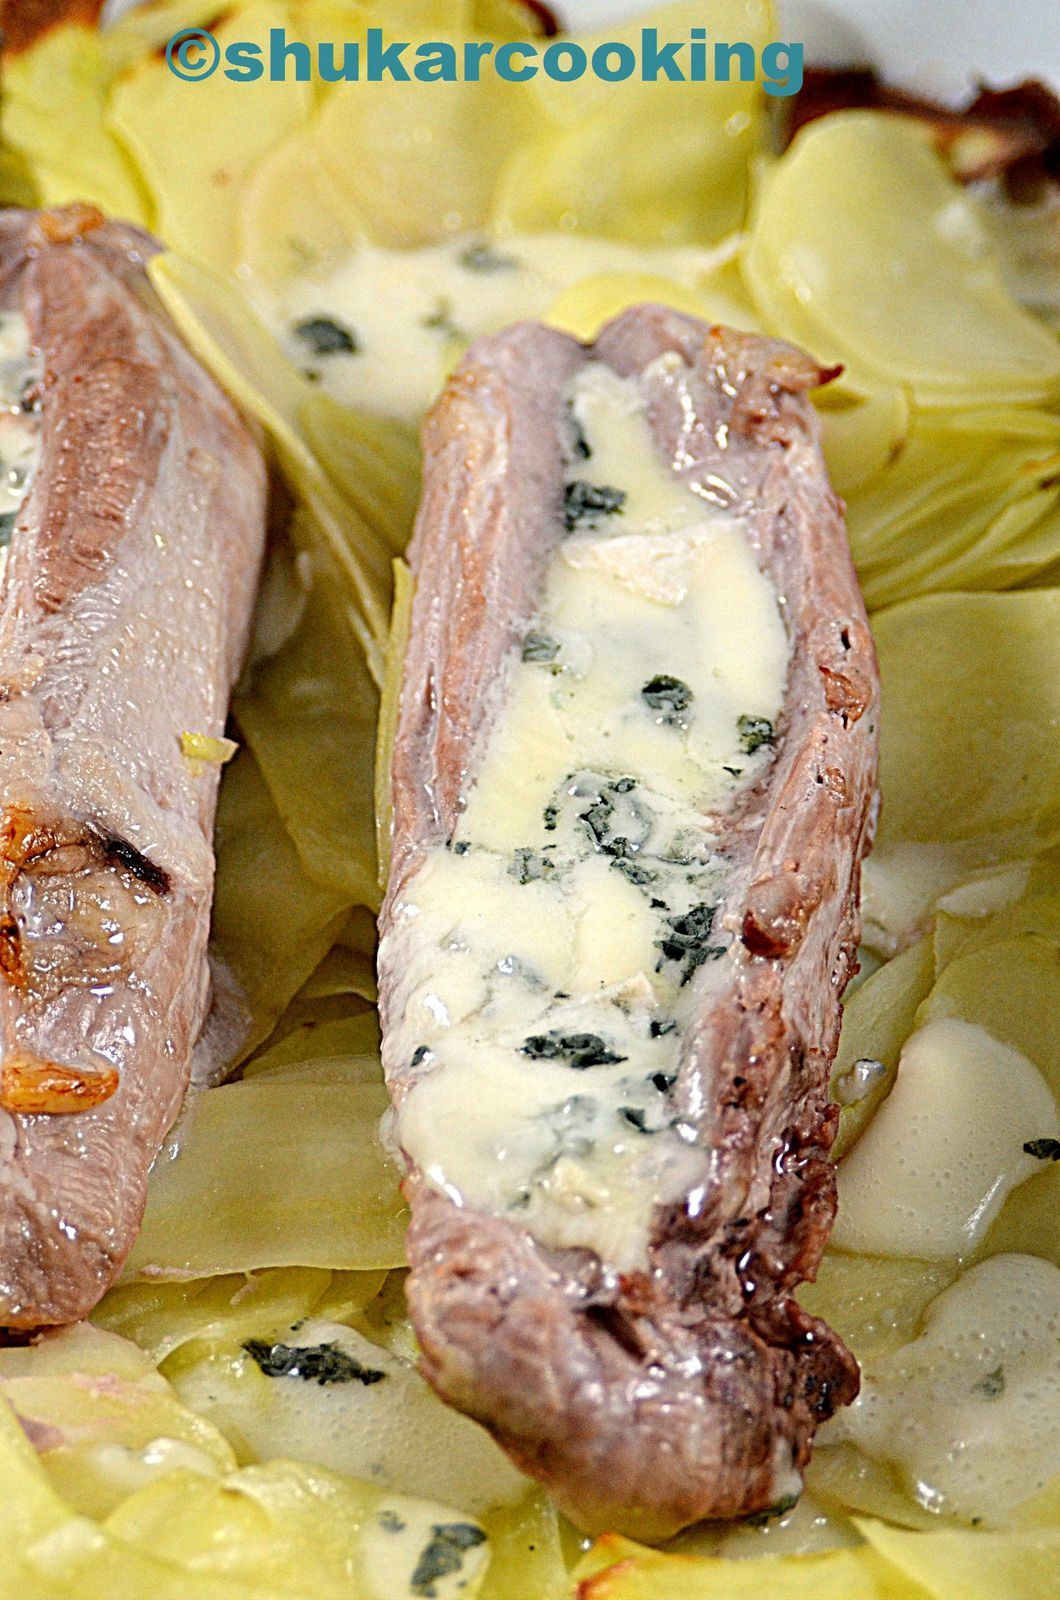 Filet mignon au roquefort shukar cooking - Filet mignon au roquefort ...